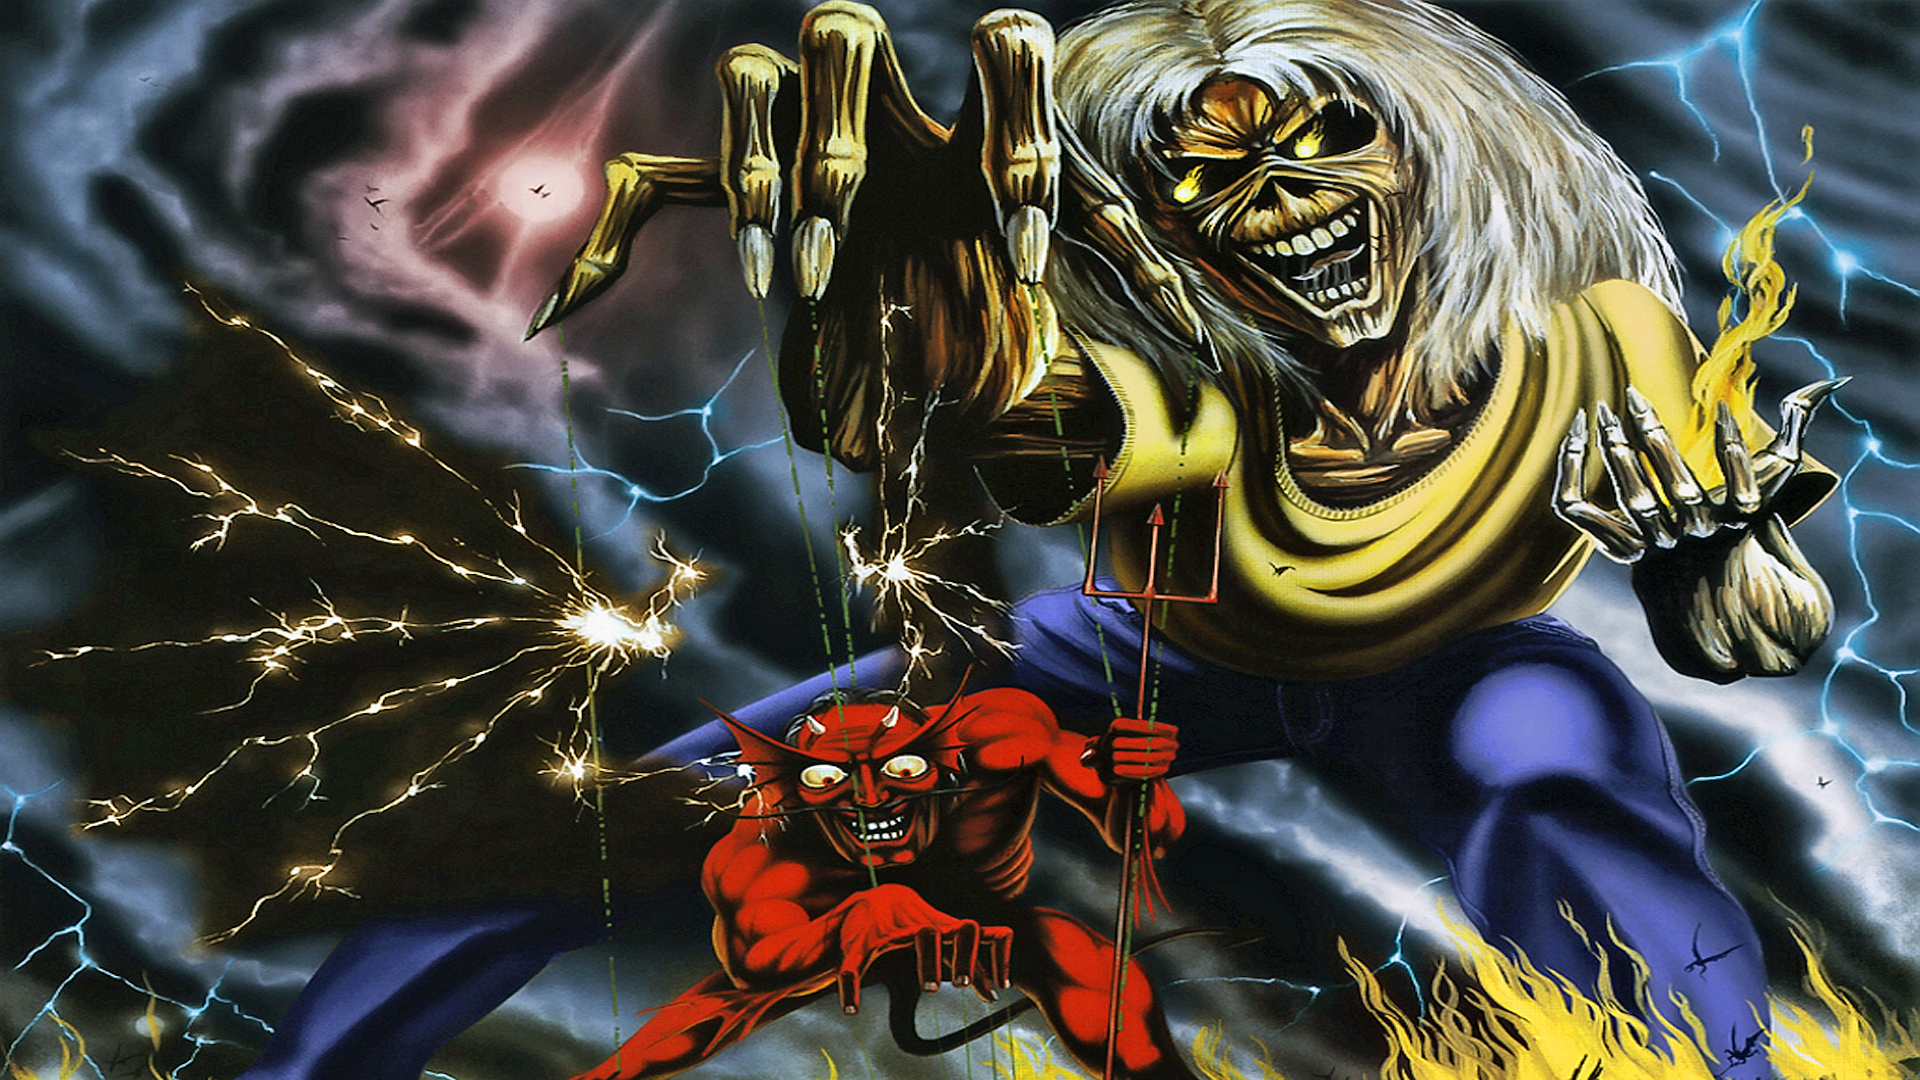 Iron maiden album covers wallpapers pictures to pin on for Cover wallpaper